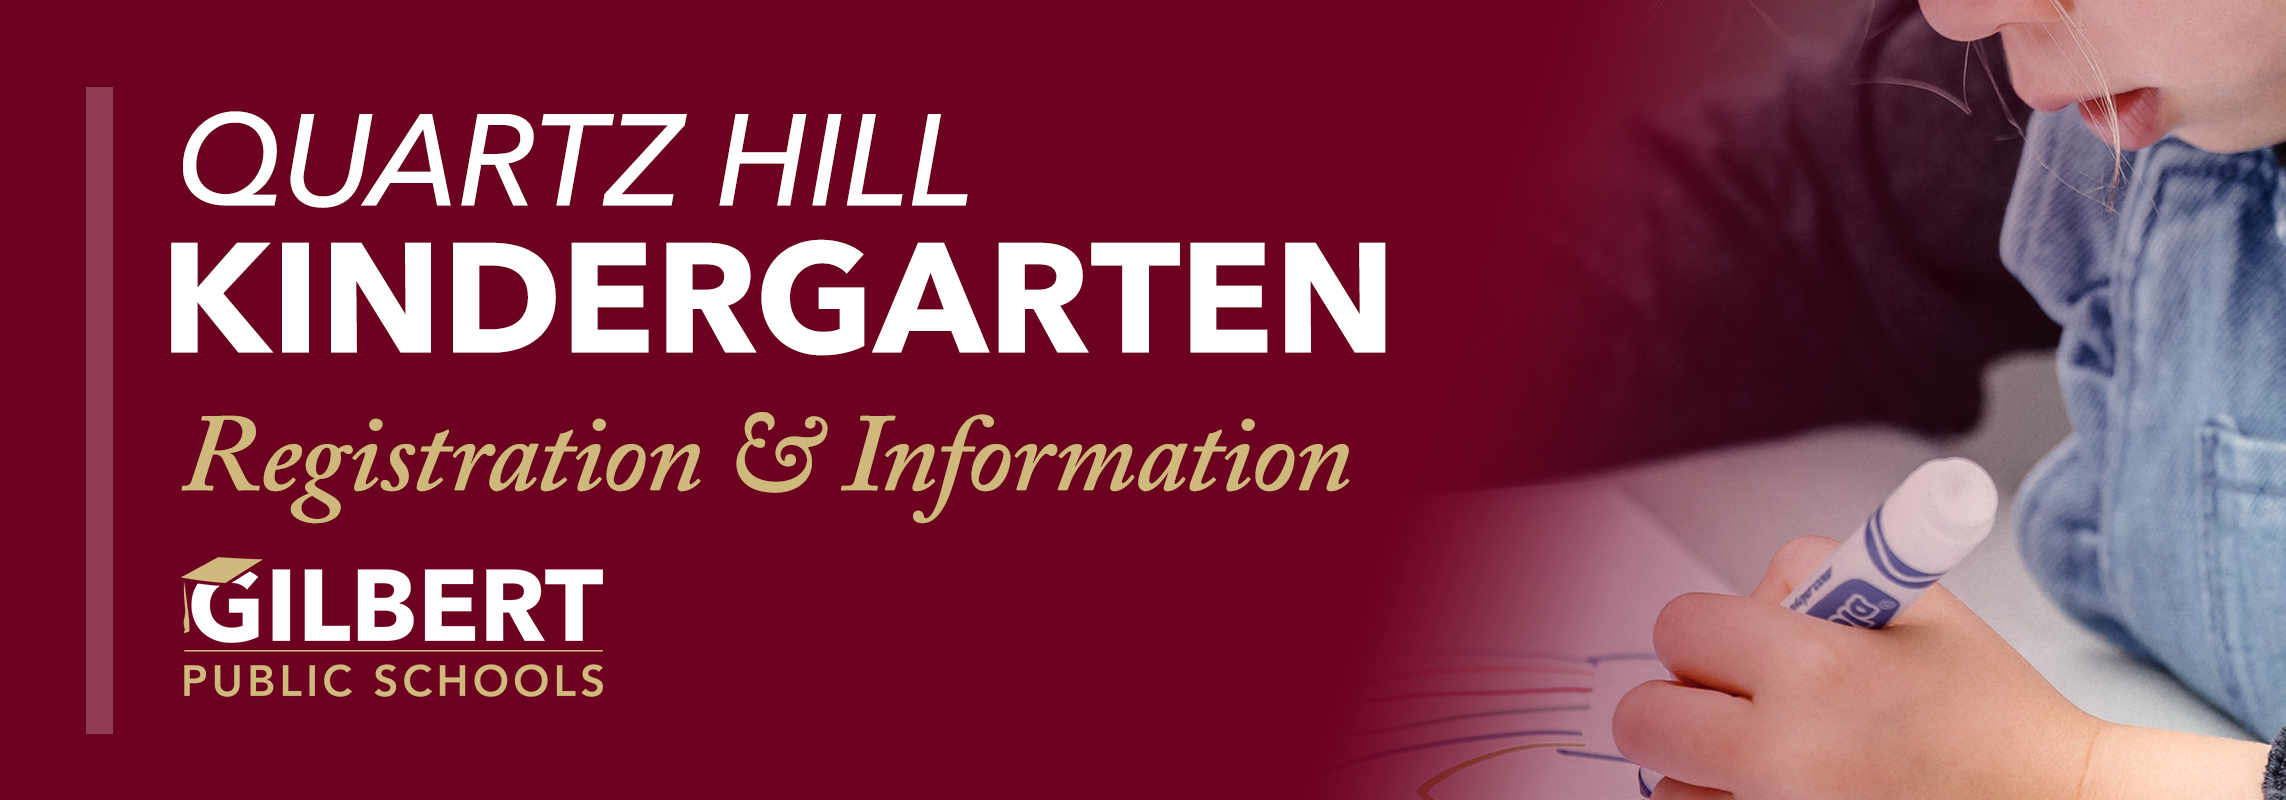 Quartz Hill Kindergarten Registration